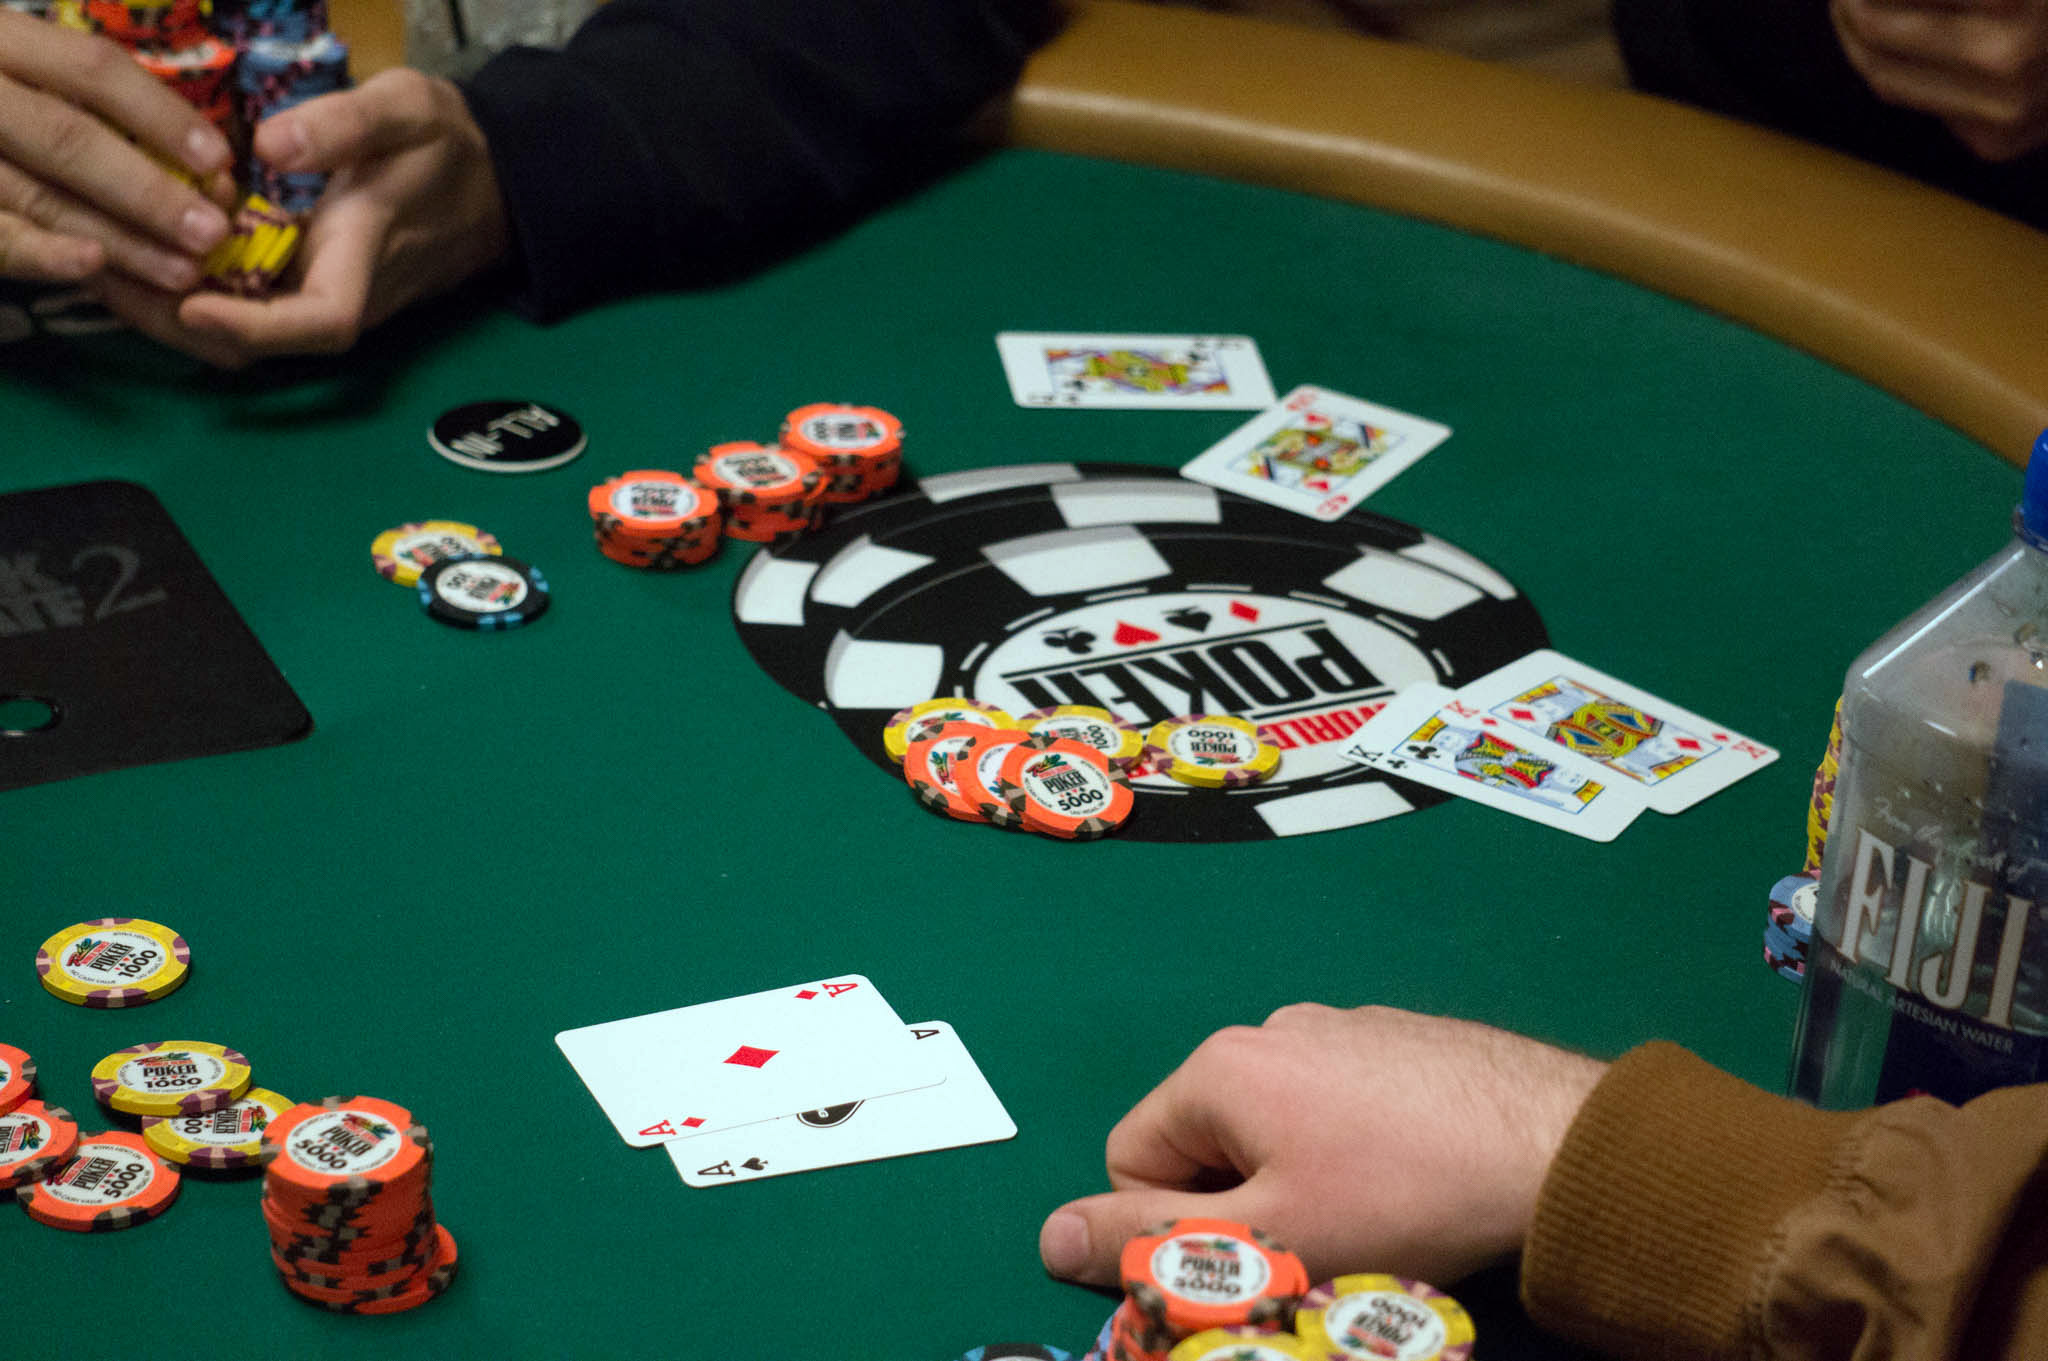 Short handed limit poker betting new customers betting offers wizard